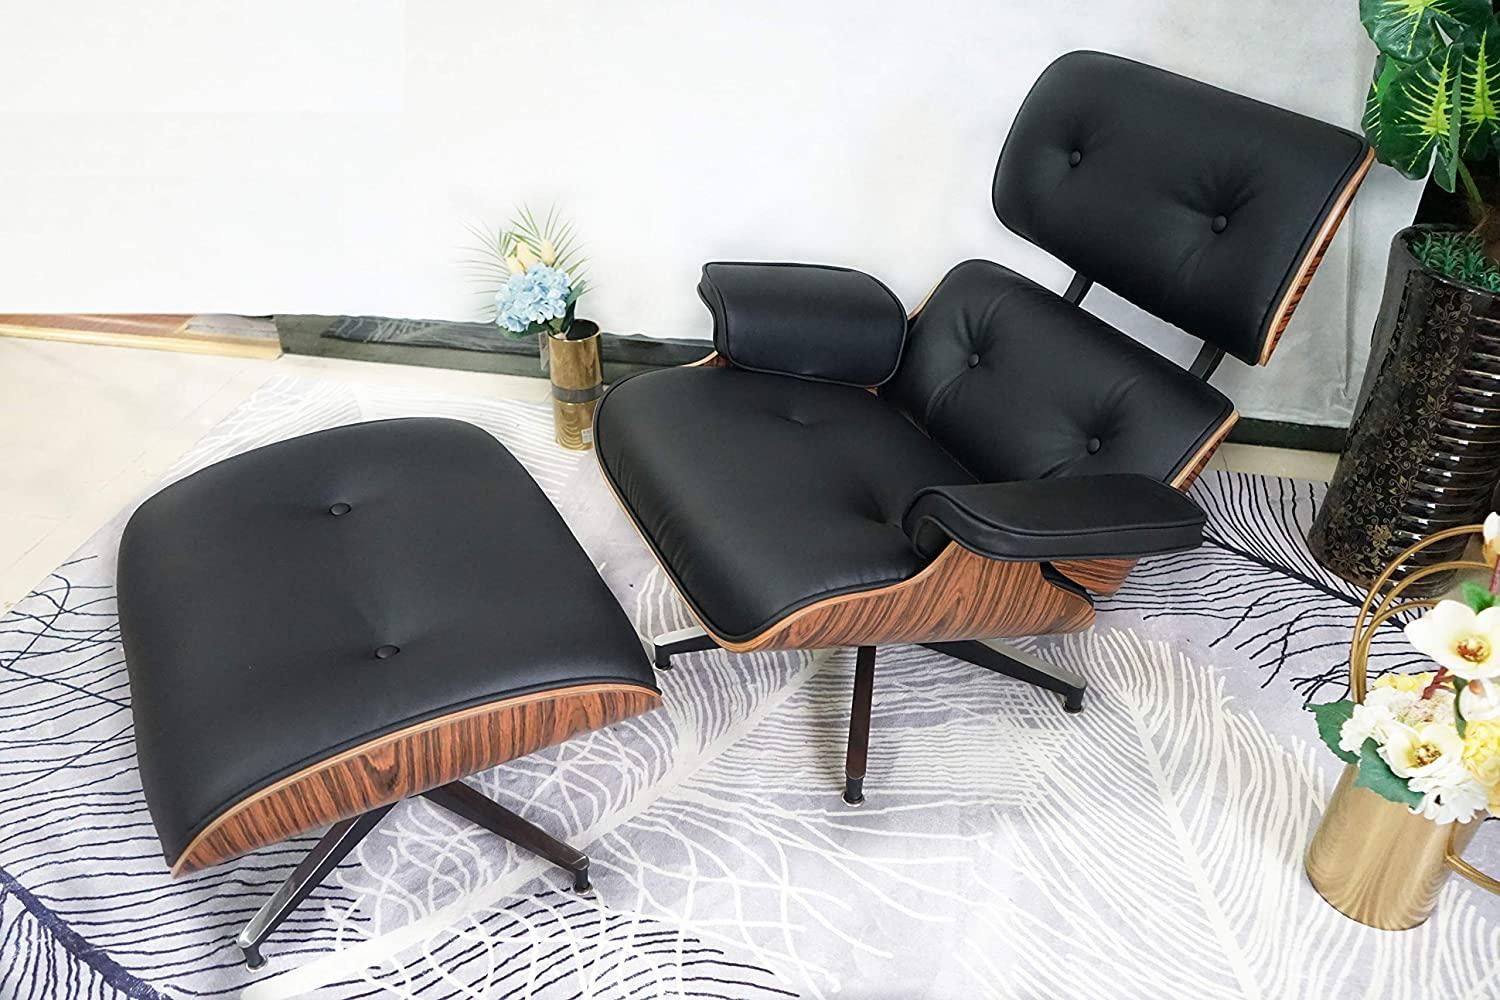 comfortable reading black chair and ottoman